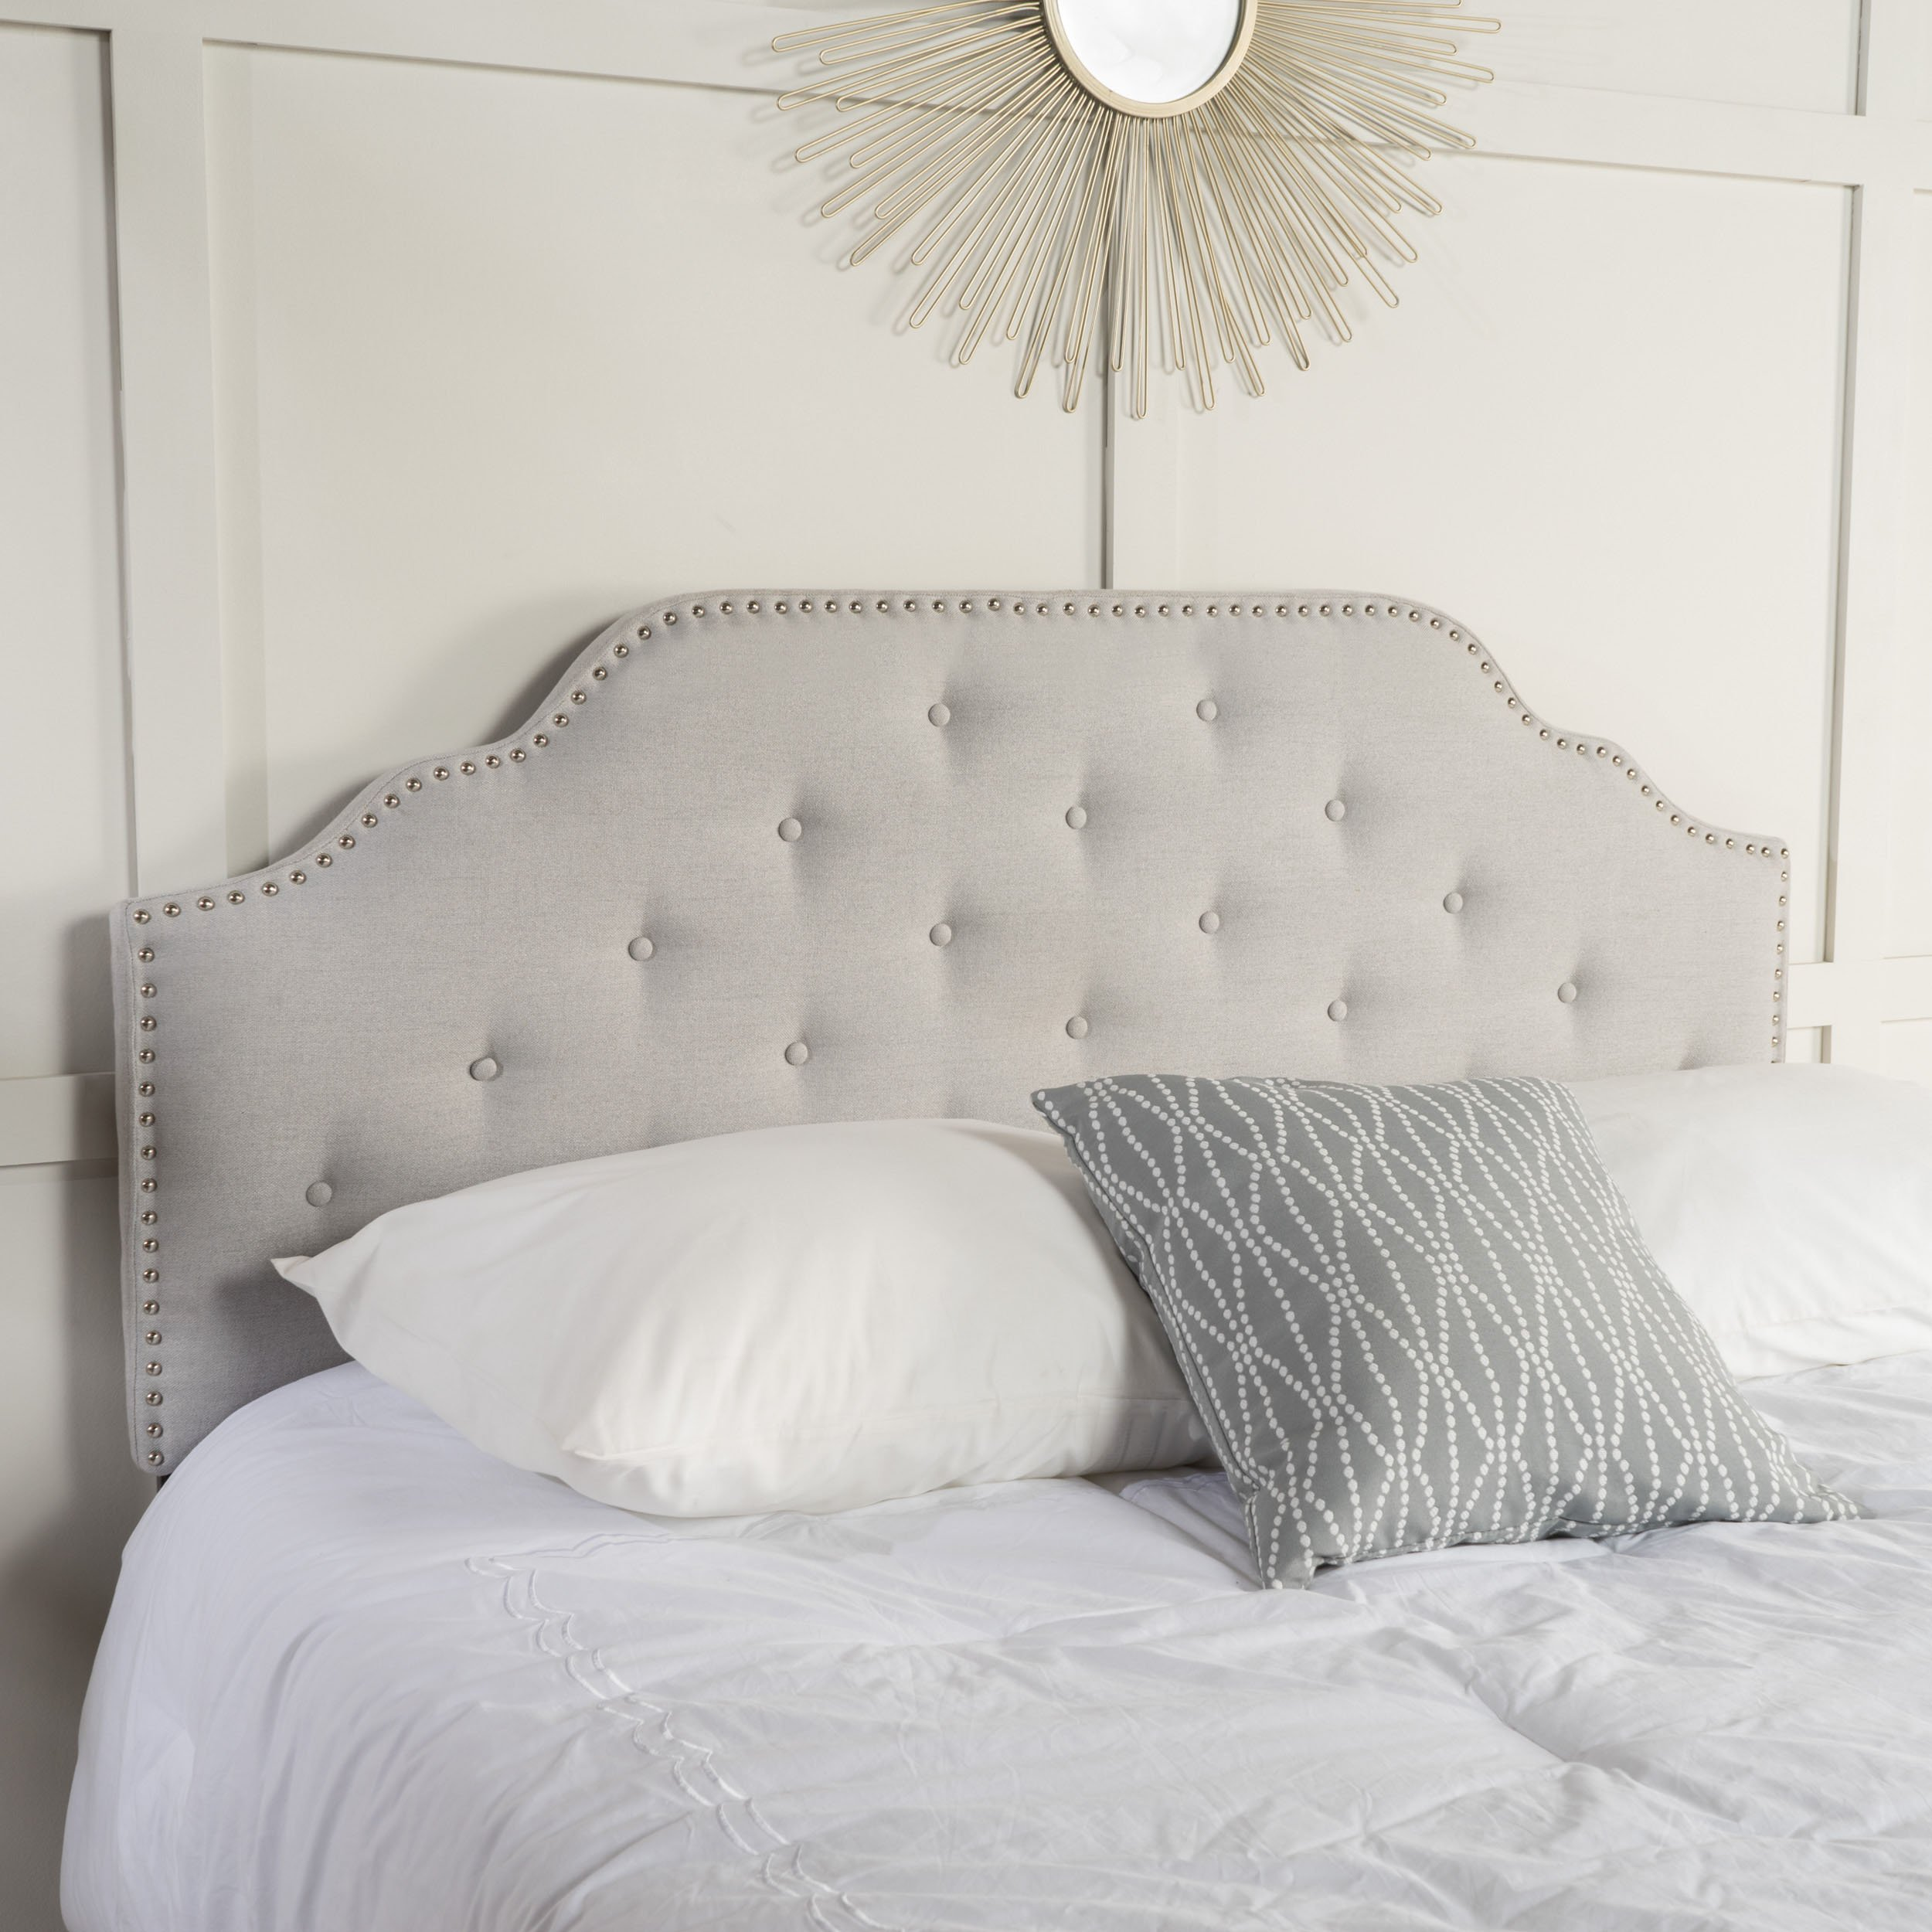 Christopher Knight Home 298920 Soleil Queen/Full Headboard, Gray by Christopher Knight Home